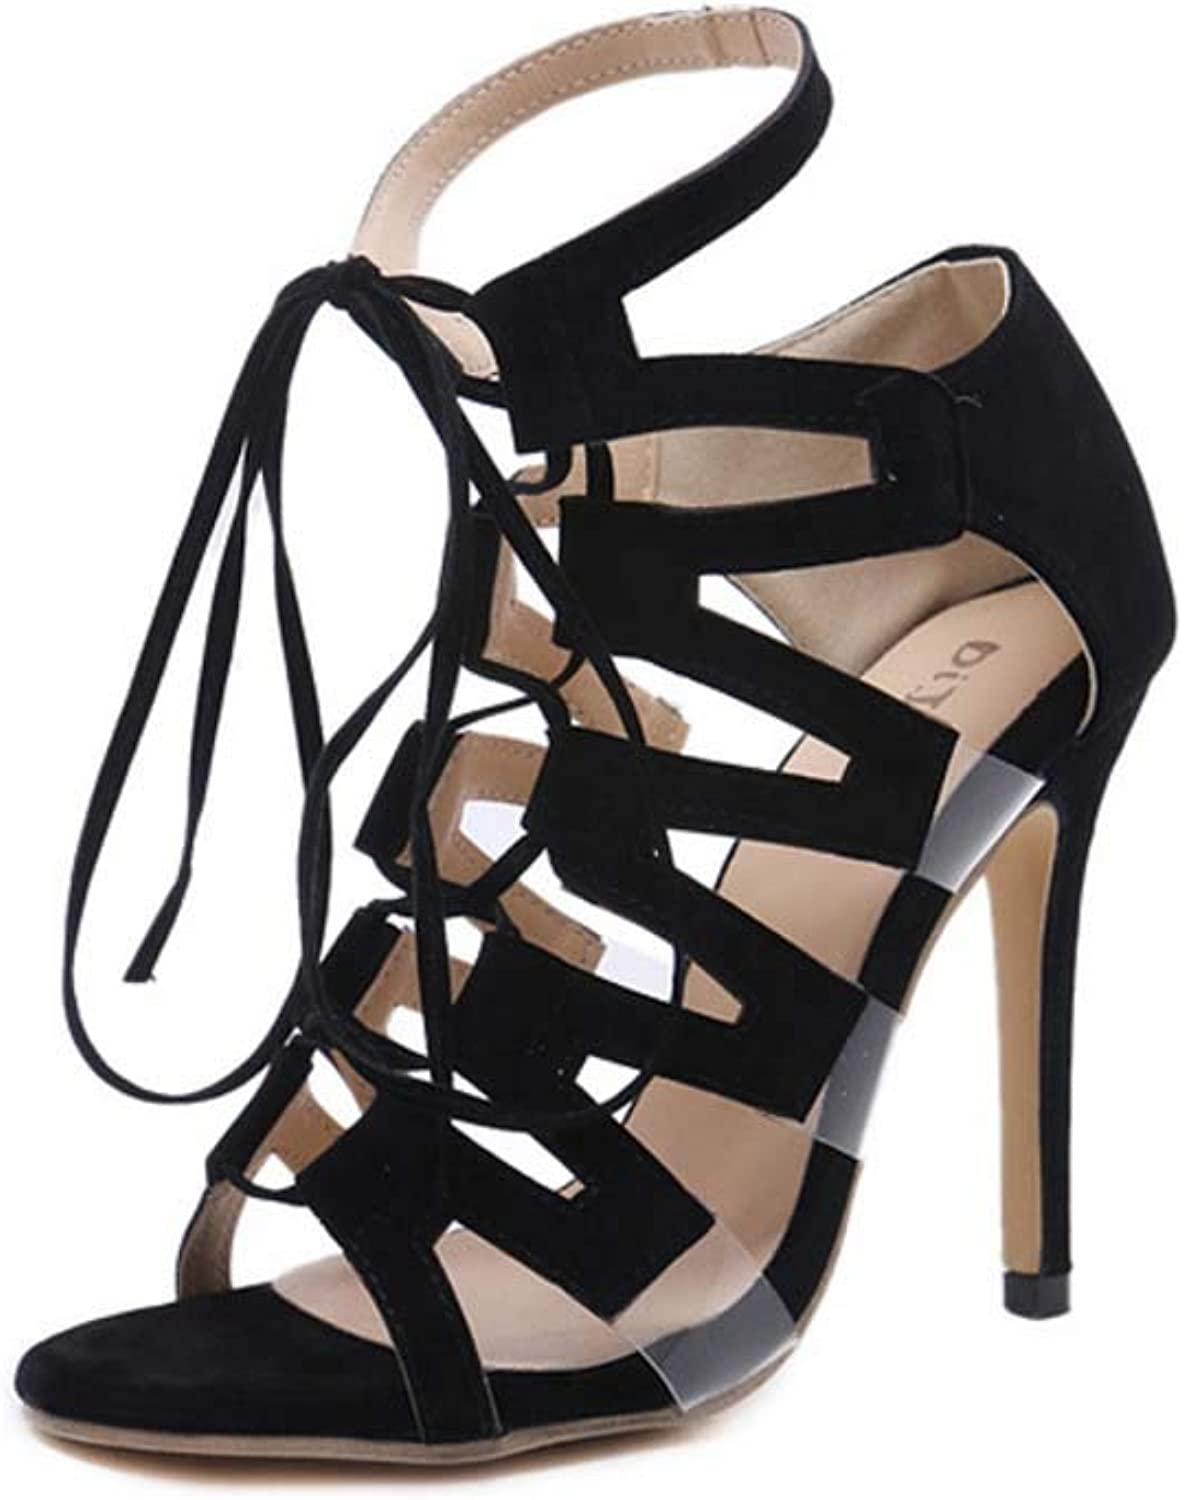 Women Cone Heel shoes,Ladies Summer Ankle Strap Sandals,Wedding,Party,Evening